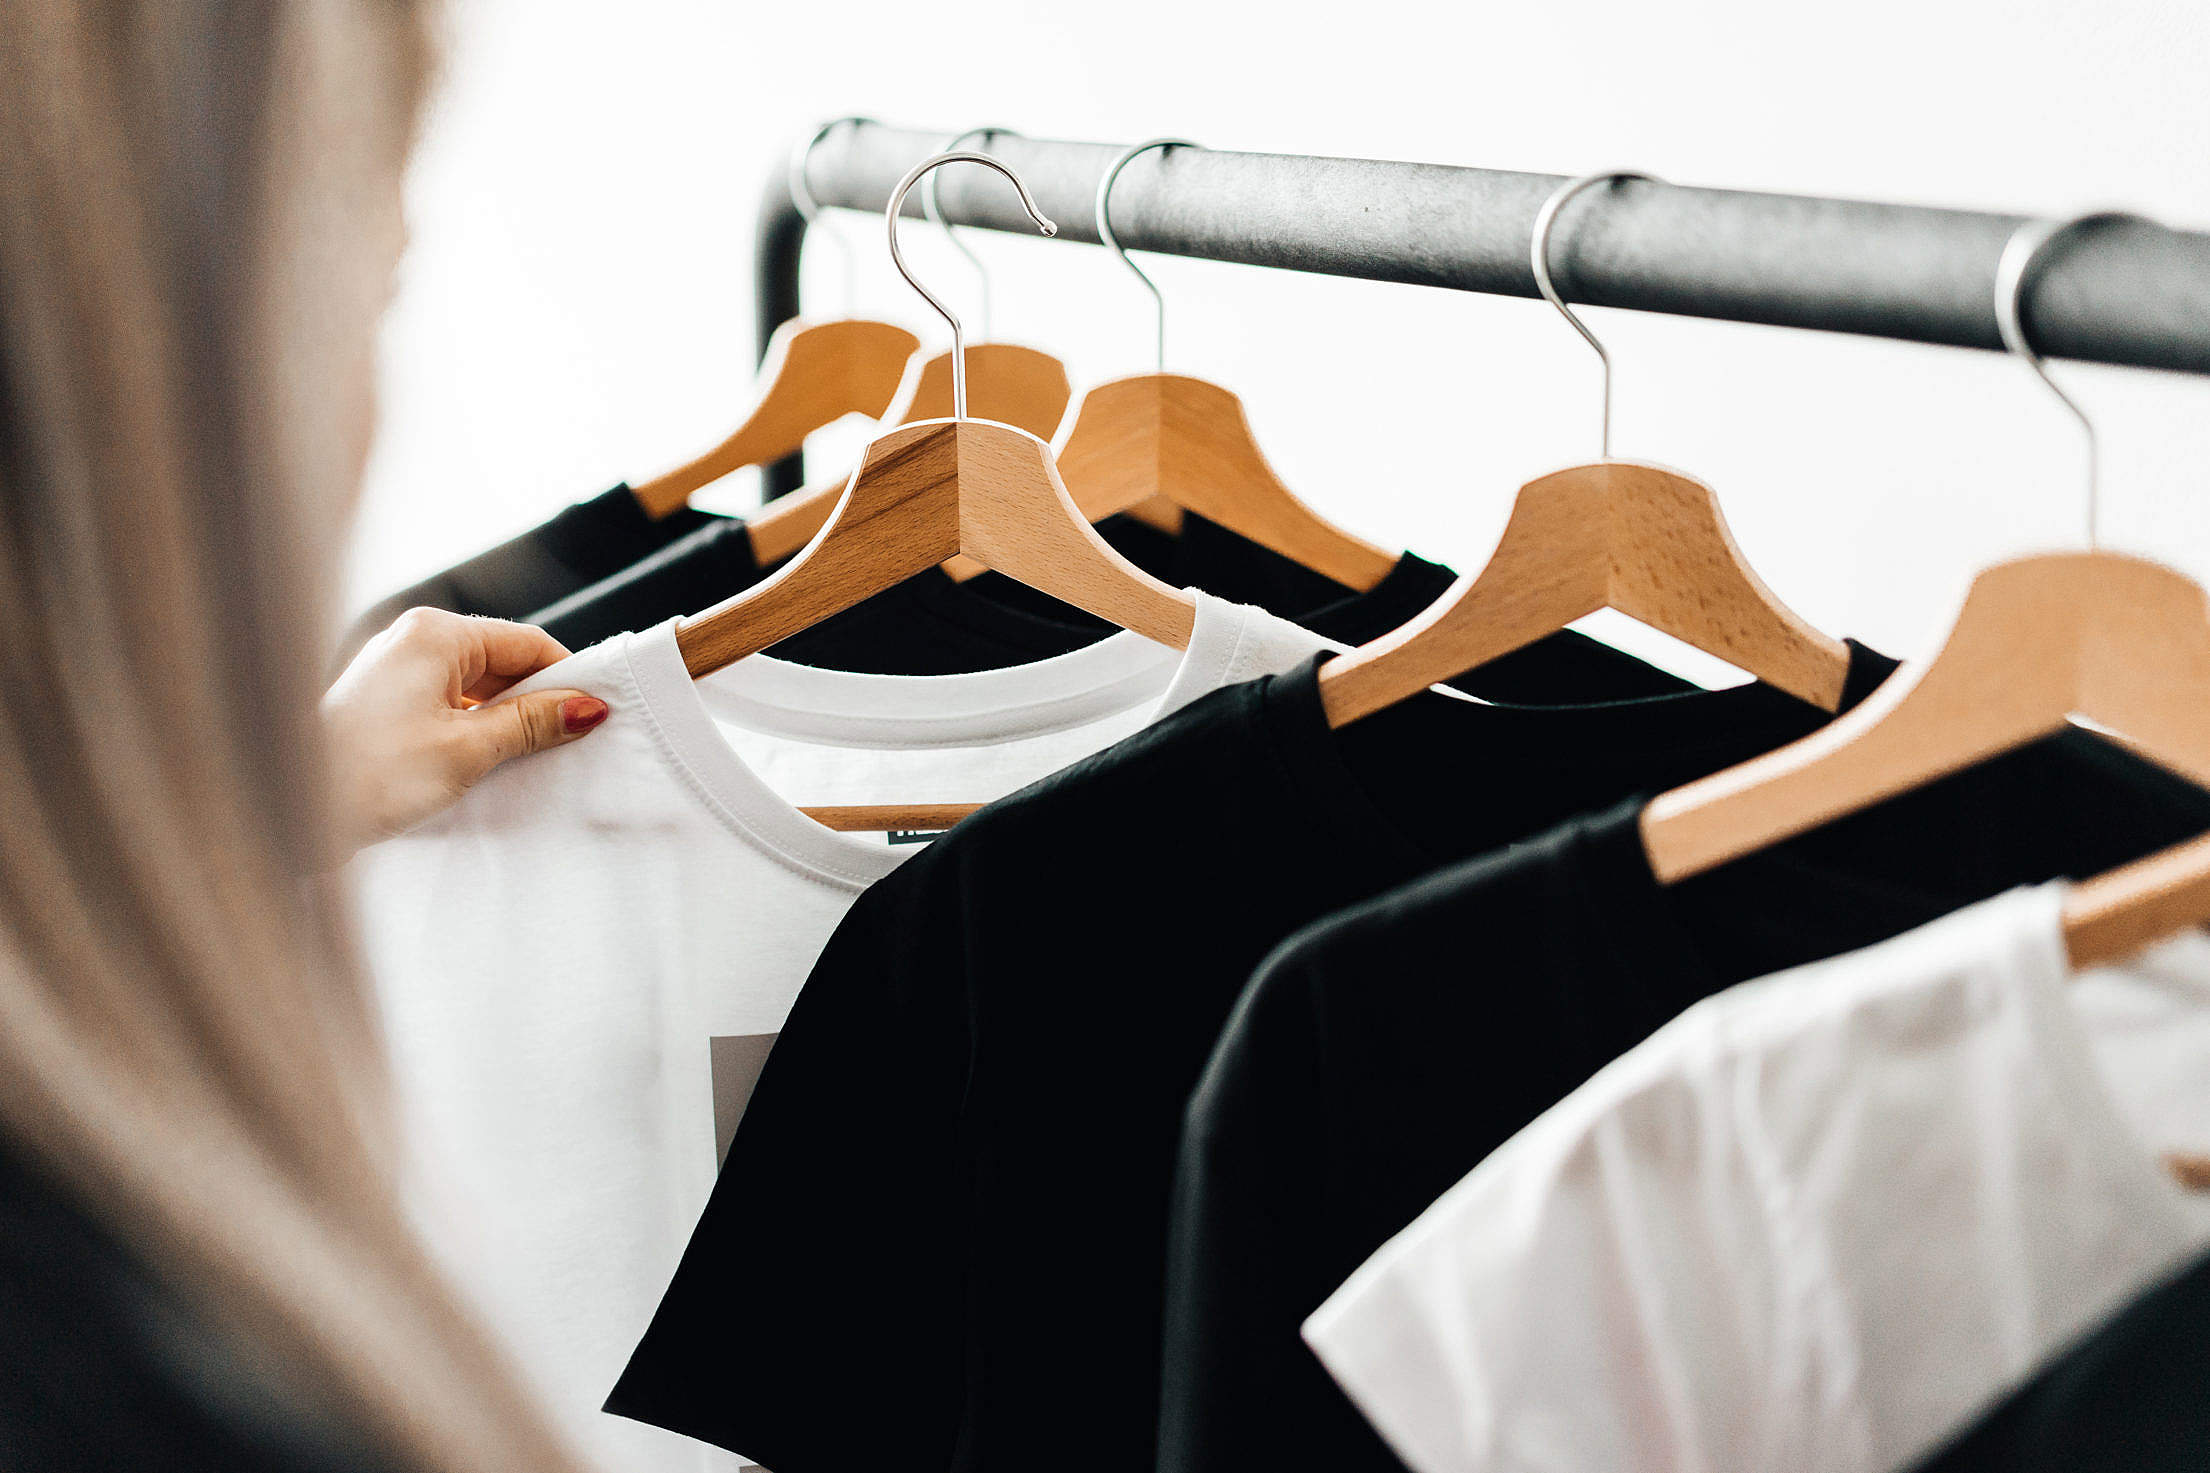 Download Woman Choosing T-Shirts During Clothing Shopping at Apparel Store Free Stock Photo